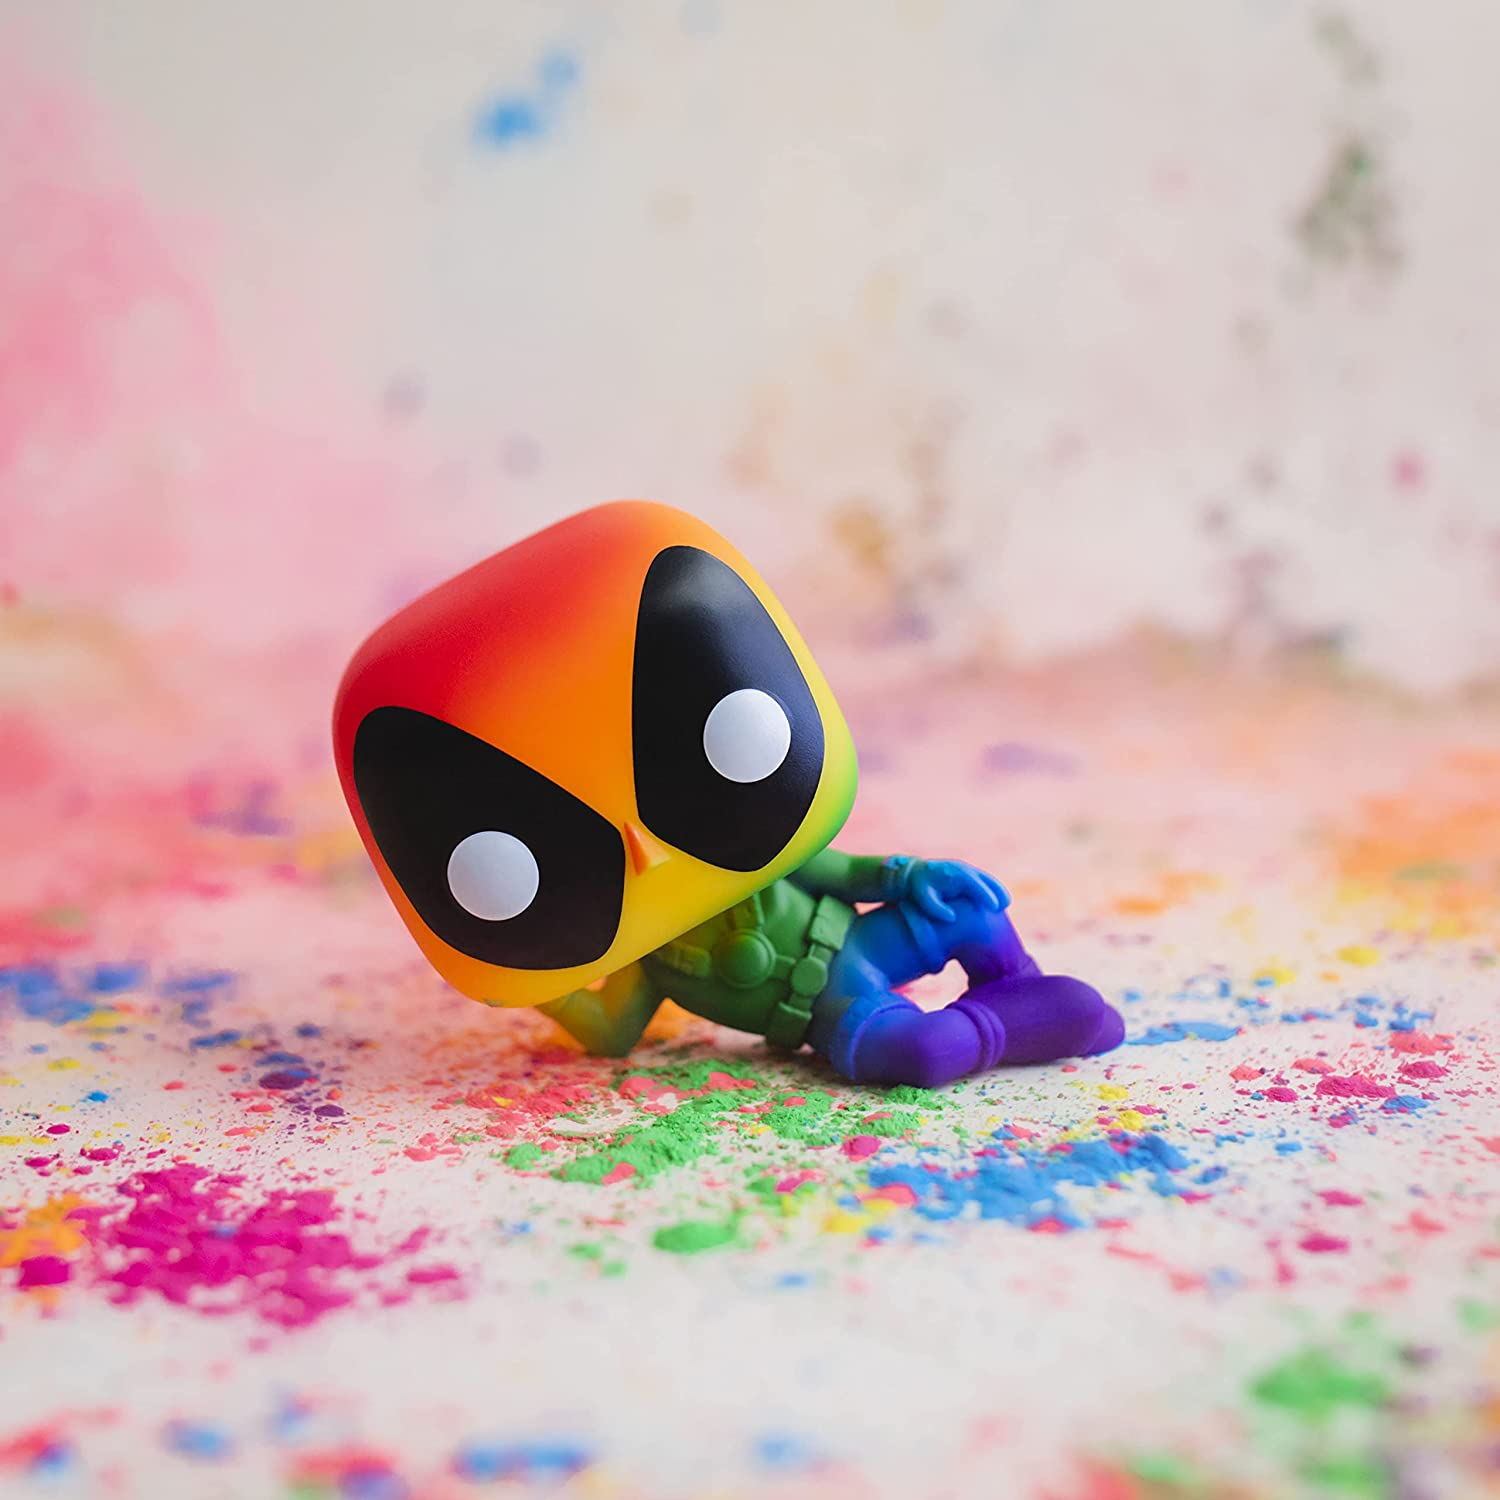 Funko's 2021 Pride Pop! collection includes Deadpool, Mickey Mouse, and Stitch 21